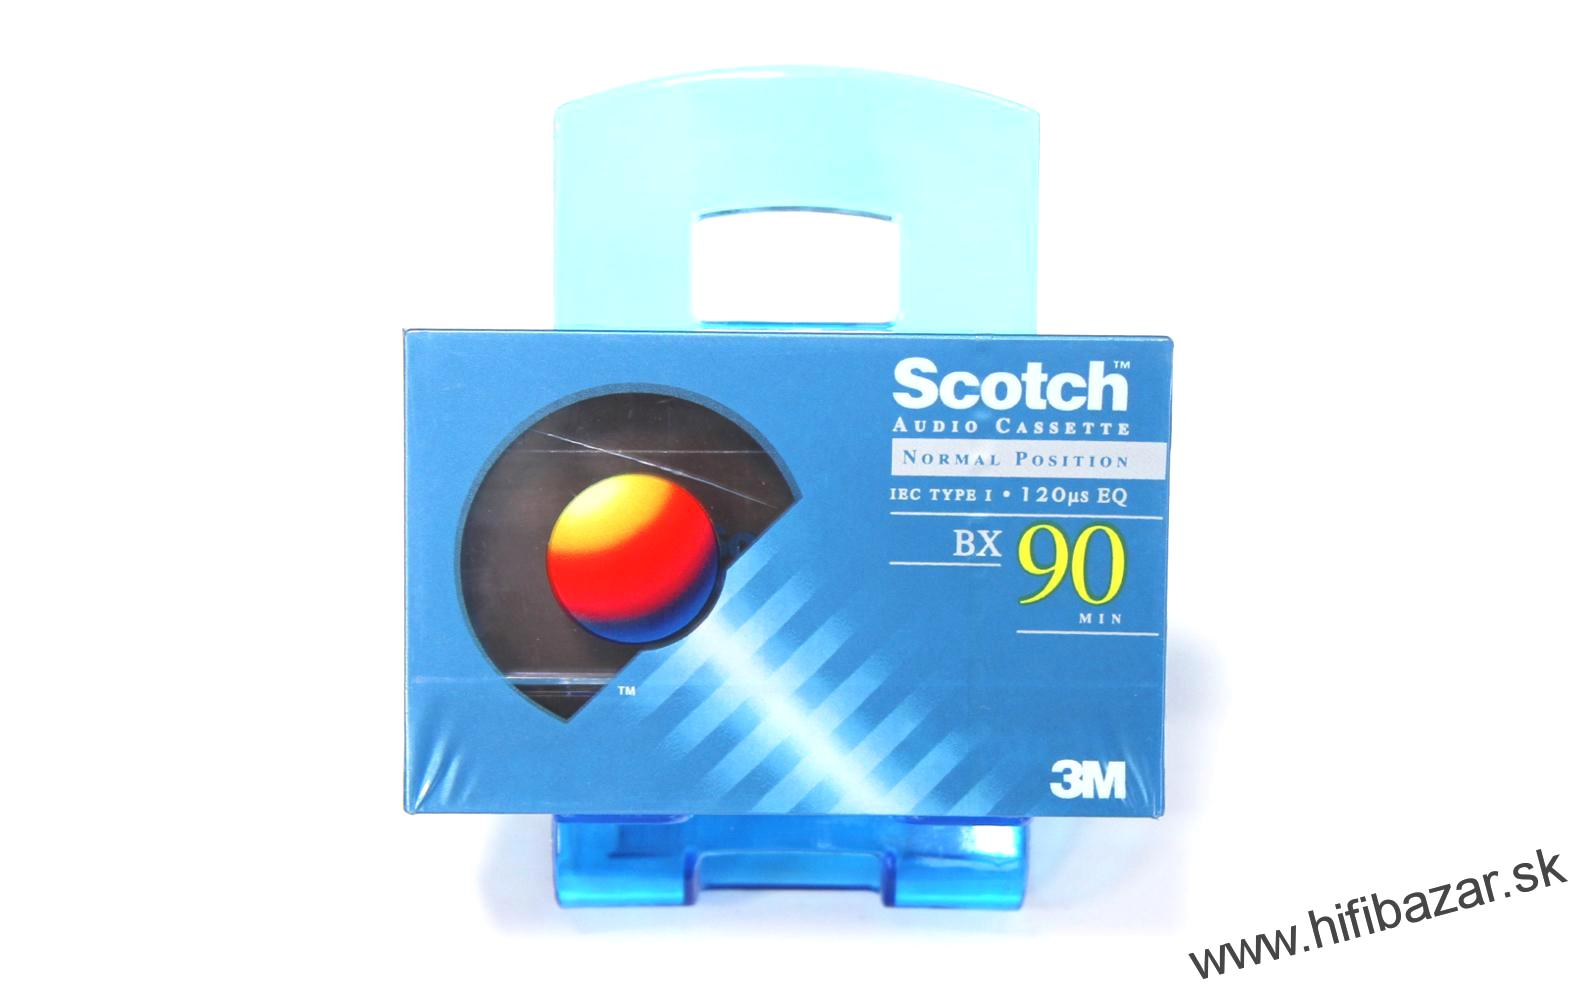 SCOTCH BX-90 Position Normal